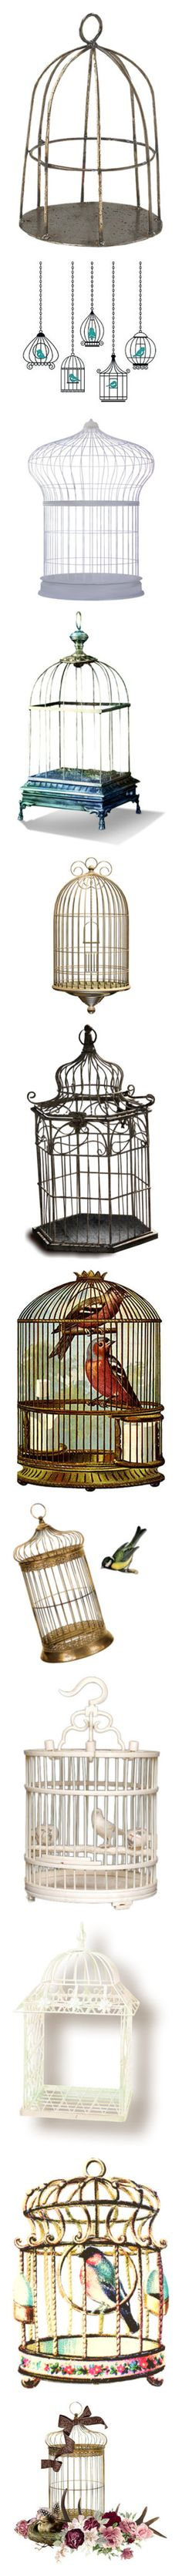 """""""Cages"""" by jaja8x8 ❤ liked on Polyvore featuring fillers, birds, cages, birdcages, decor, backgrounds, drawings, decoration, doodles and effects"""